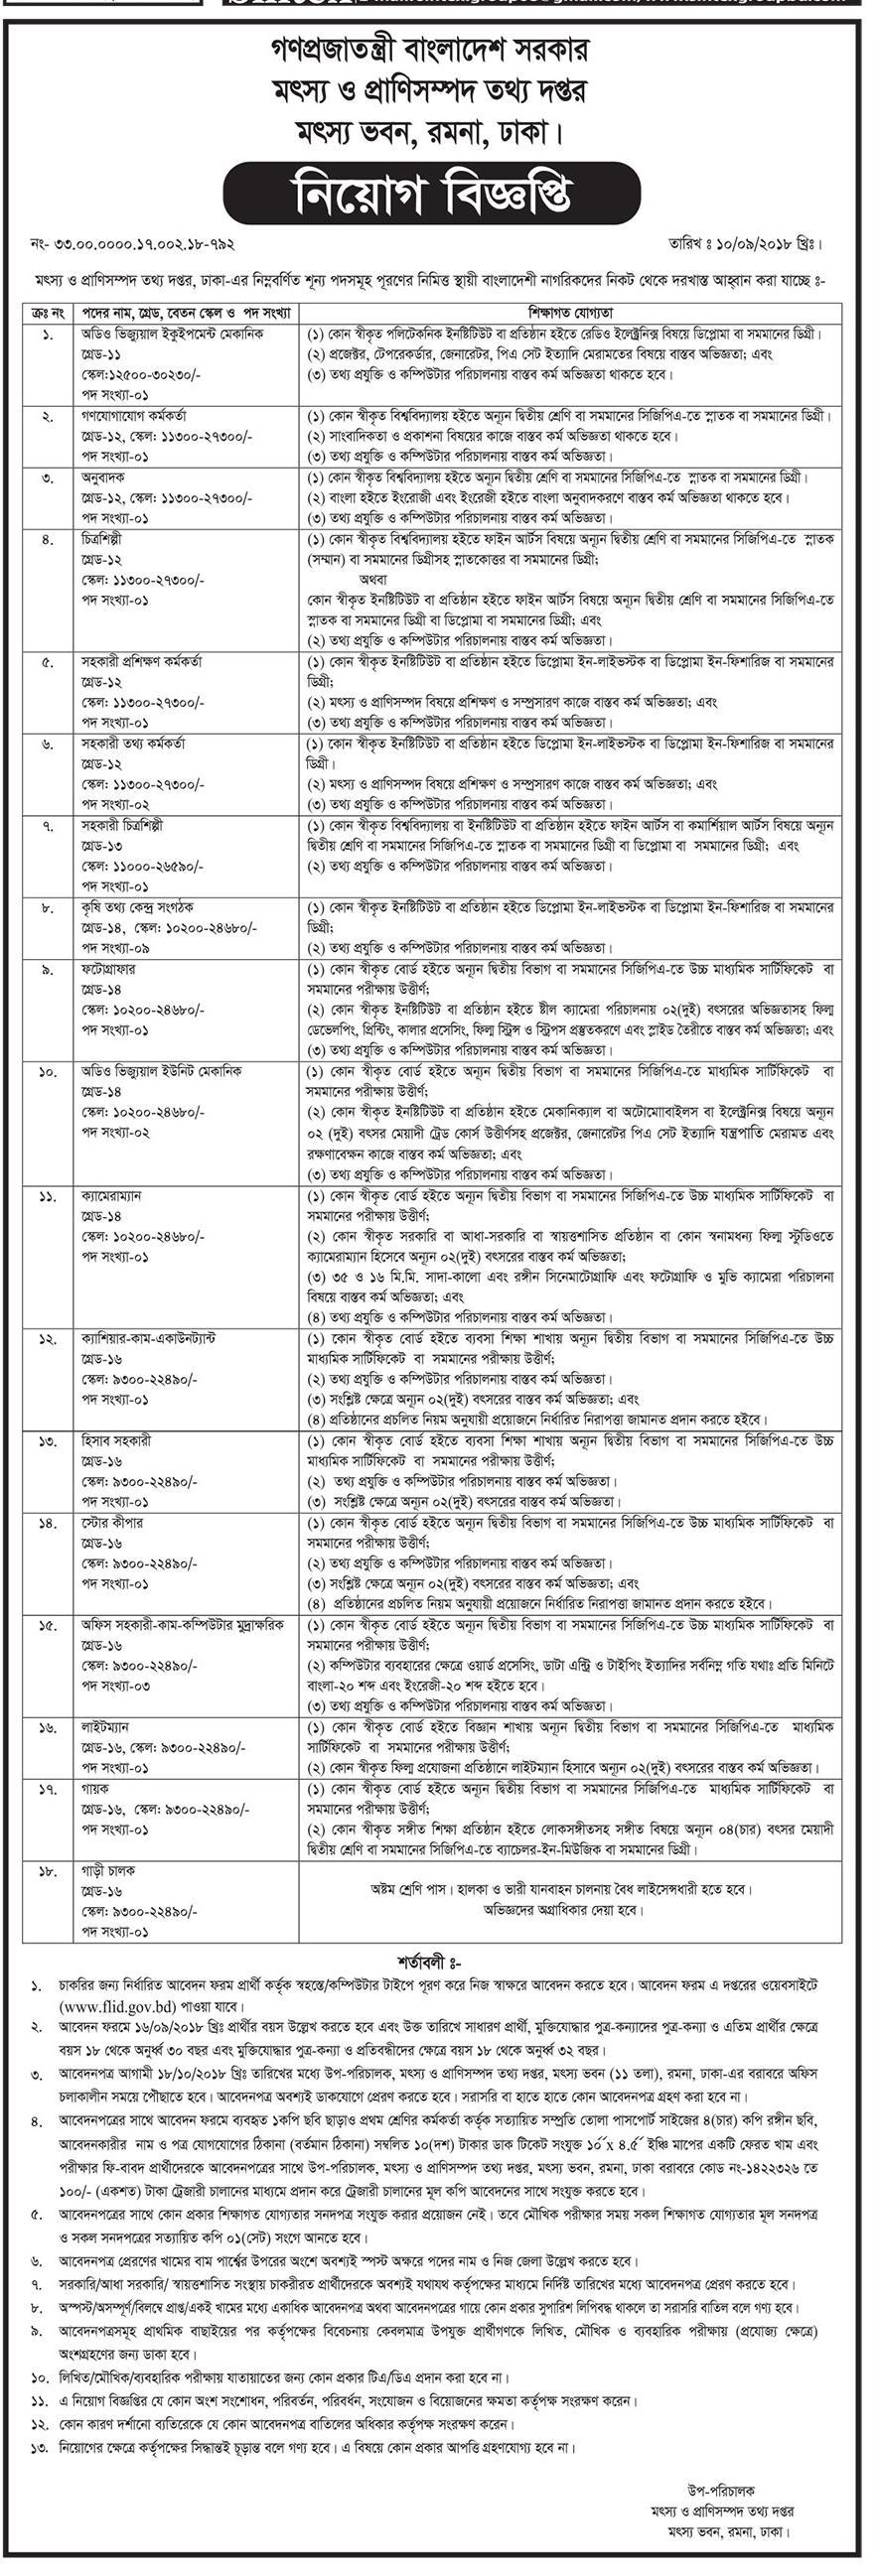 Department of Fisheries and Livestock Information (FLID) job circular & Apply Instruction -2018